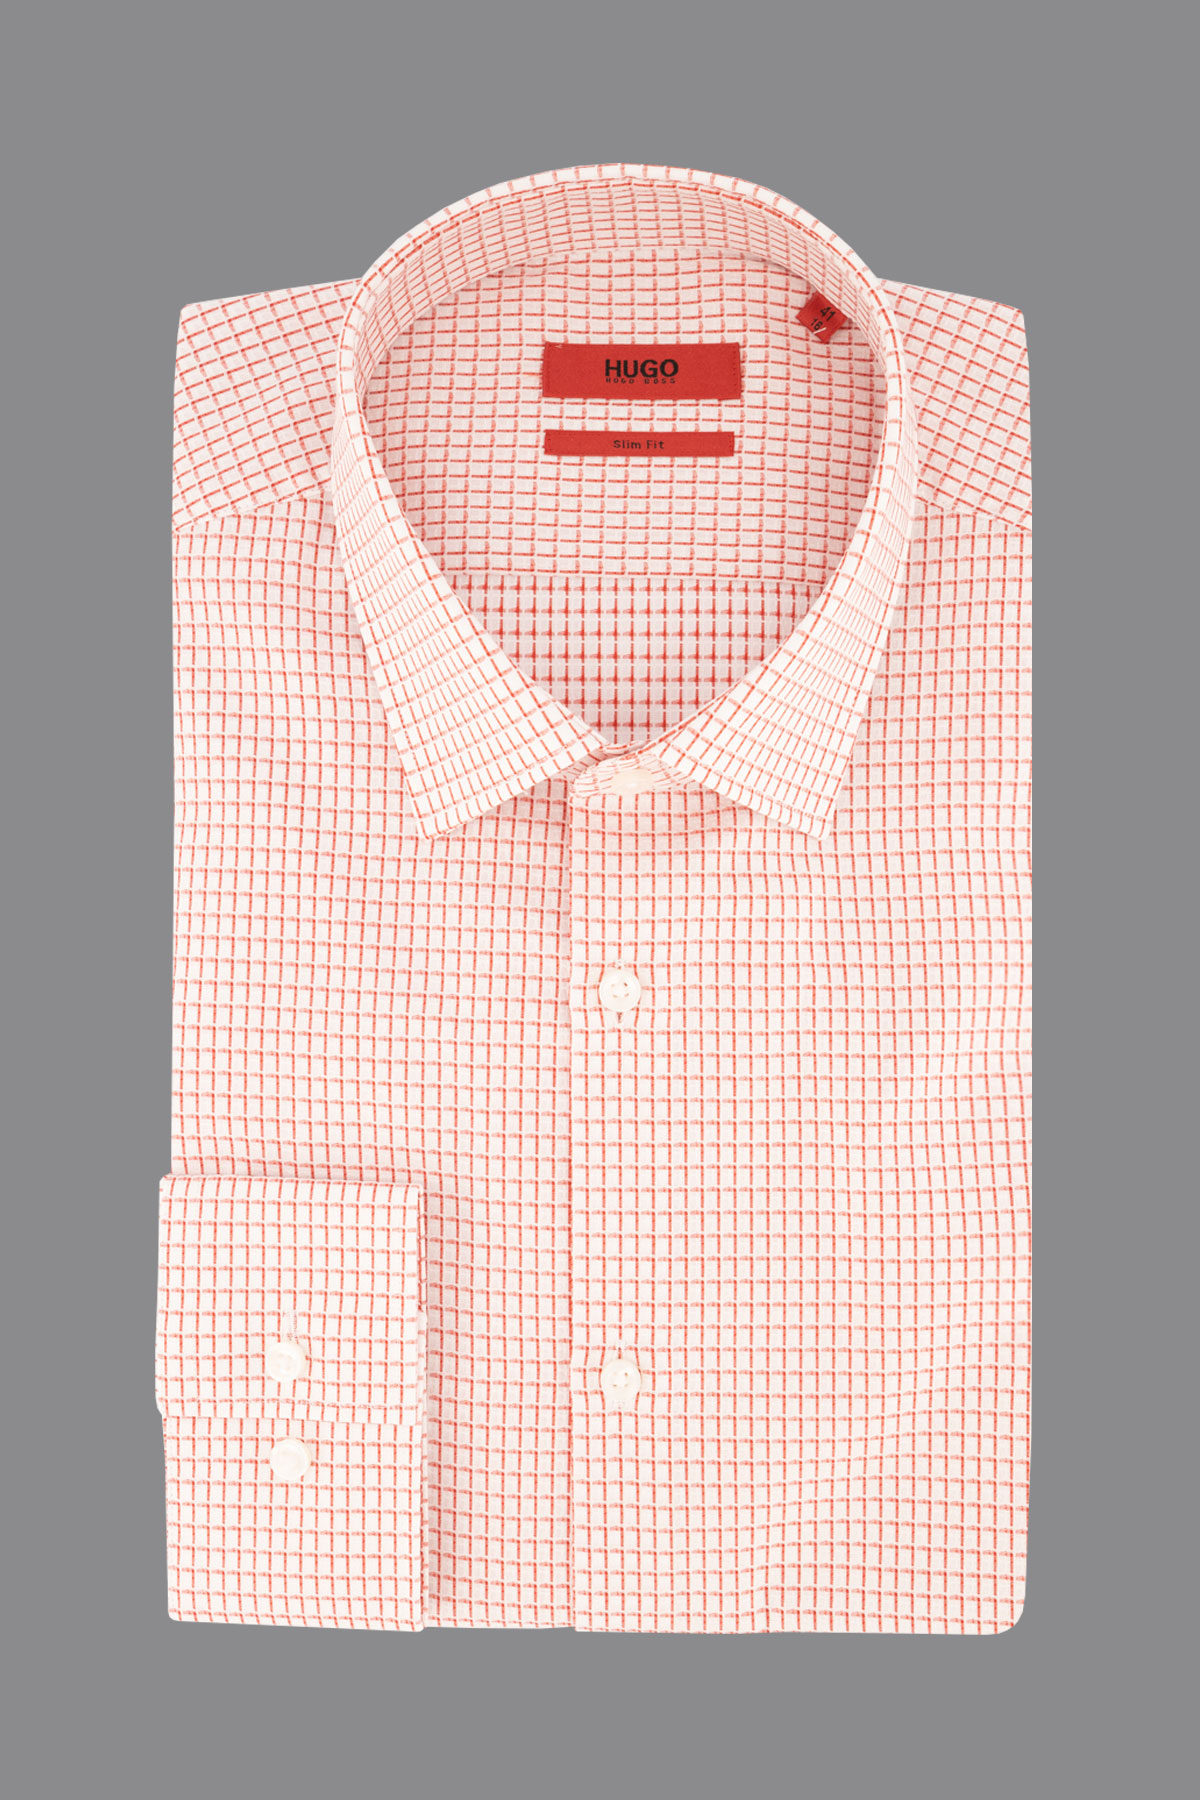 Camisa Hugo Boss, slim fit, fantasía color rojo.